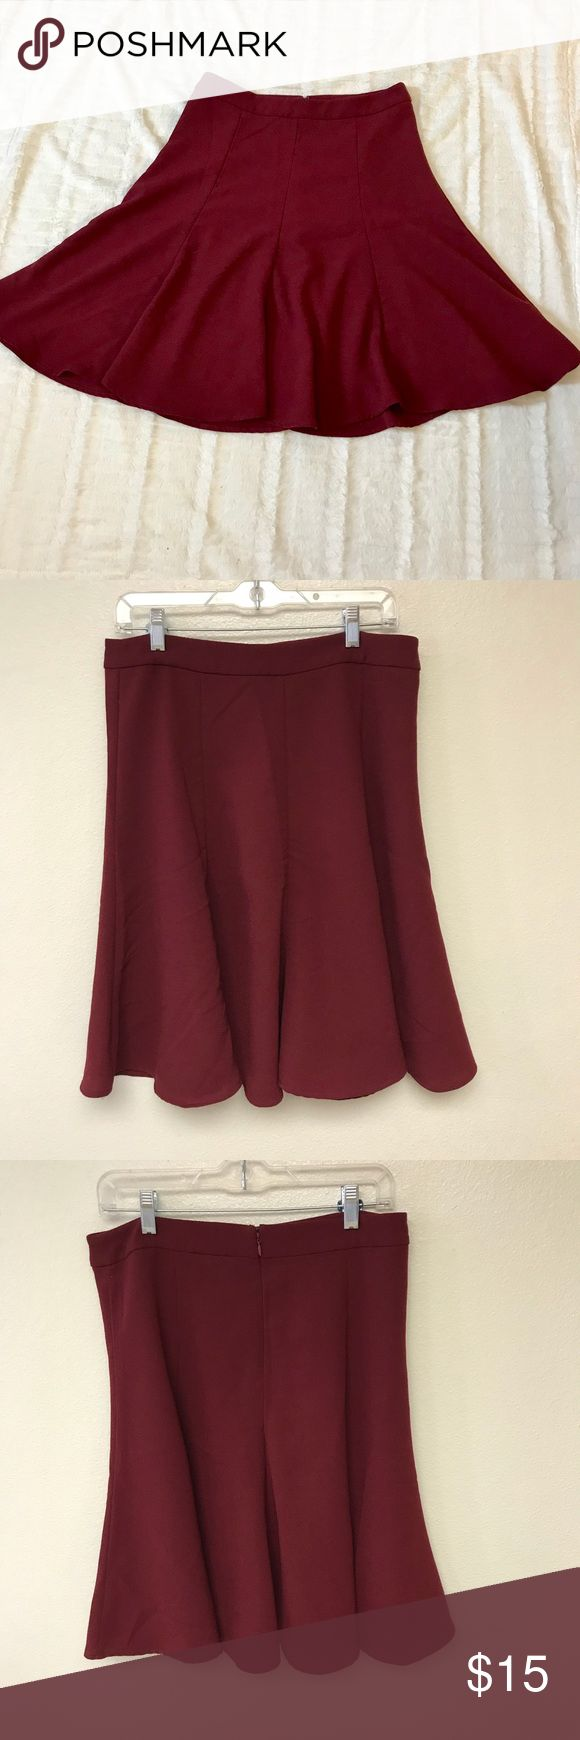 Old Navy Burgundy A line skirt size 10 Old Navy Burgundy A line skirt  - back zipper - no lined - 97% cotton 3% spandex   size 10   Length measures 25 in Waist laying flat measures approximately 16 in  Gently used no holes or stains Old Navy Skirts A-Line or Full